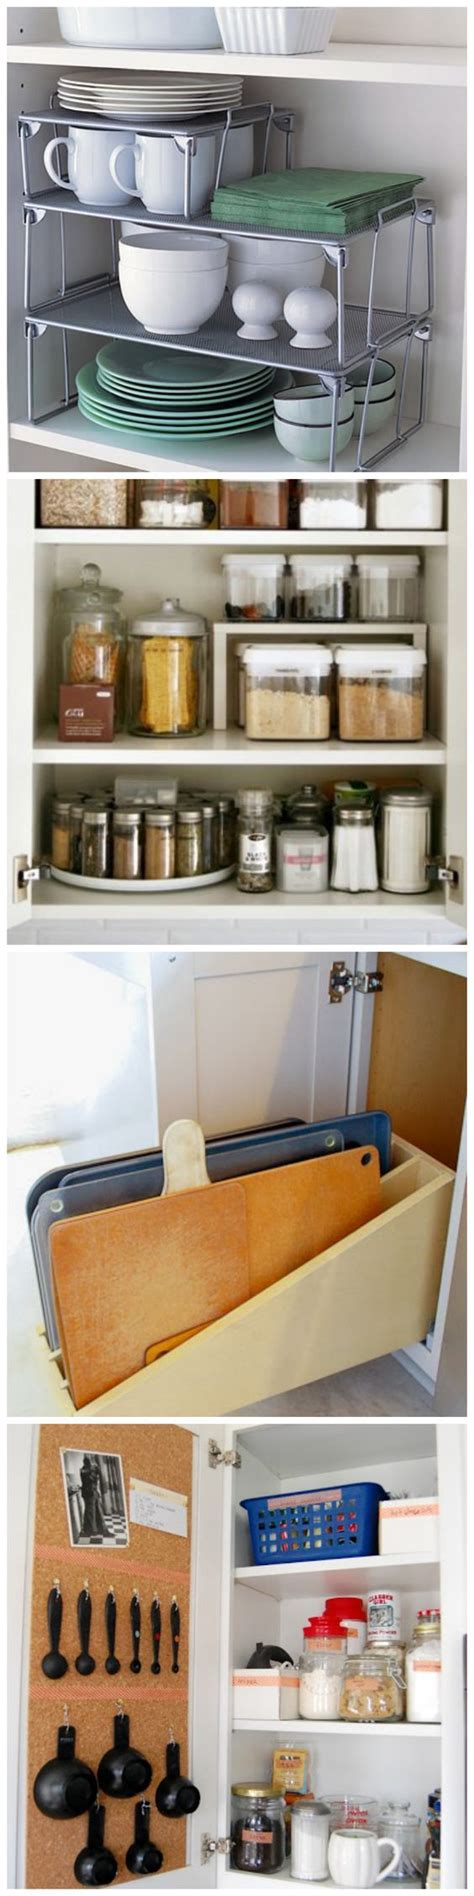 kitchen cabinets organizing ideas 1000 ideas about cabinet organizers on